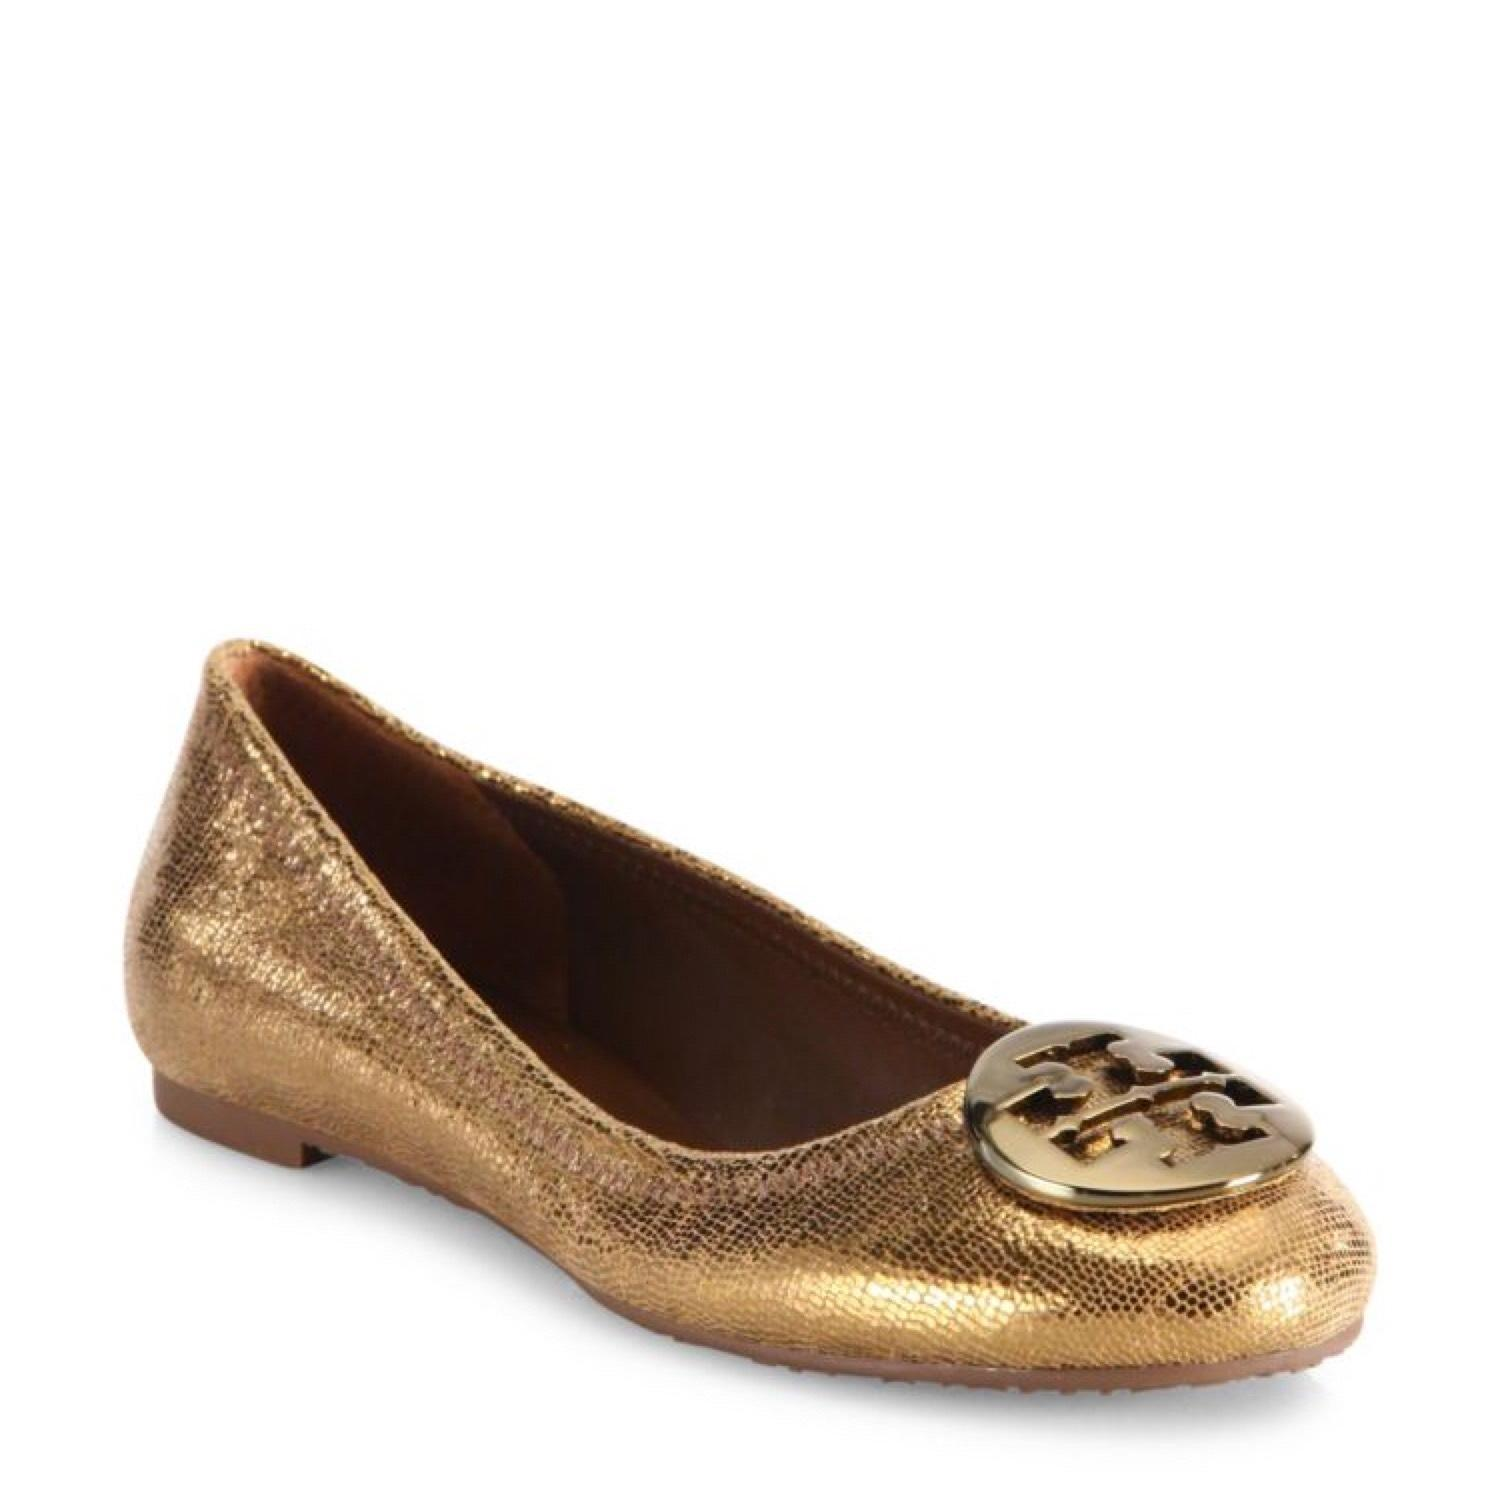 Get free shipping & returns for women's designer shoes & designer footwear on sale from Tory's new collection. Find new styles online at thatgethz.ga FURTHER MARKDOWNS: UP TO 60% OFF SHOP NOW Menu. Search. Search Go. My Account. Sign In Create An Account Check Order Status 0. Shopping bag 0. Tory Burch Foundation Tory Burch Tory Burch. Search.